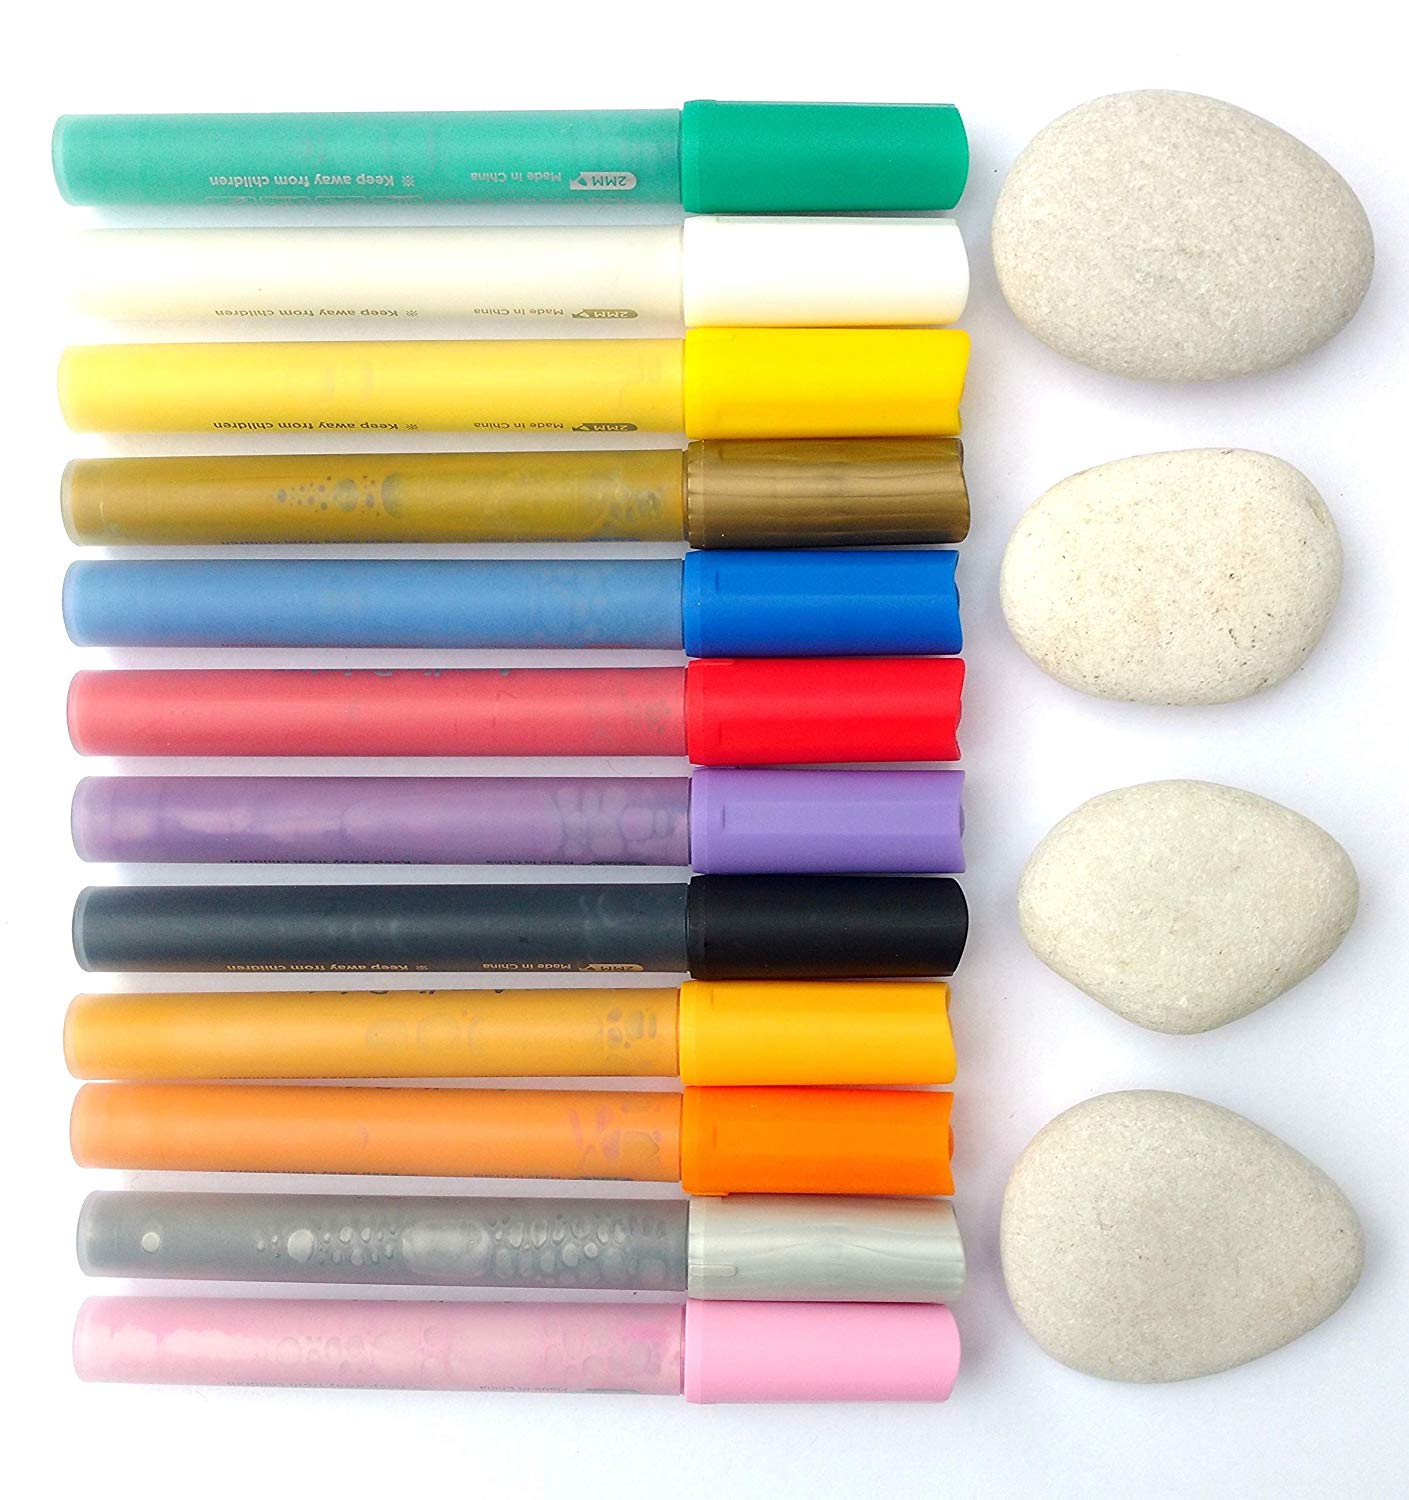 Capcouriers Rock Painting Set - 4 Smooth Rocks for Painting and 12 Acrylic Paint Pens - Rocks are 1.5 to 2 inches in Length